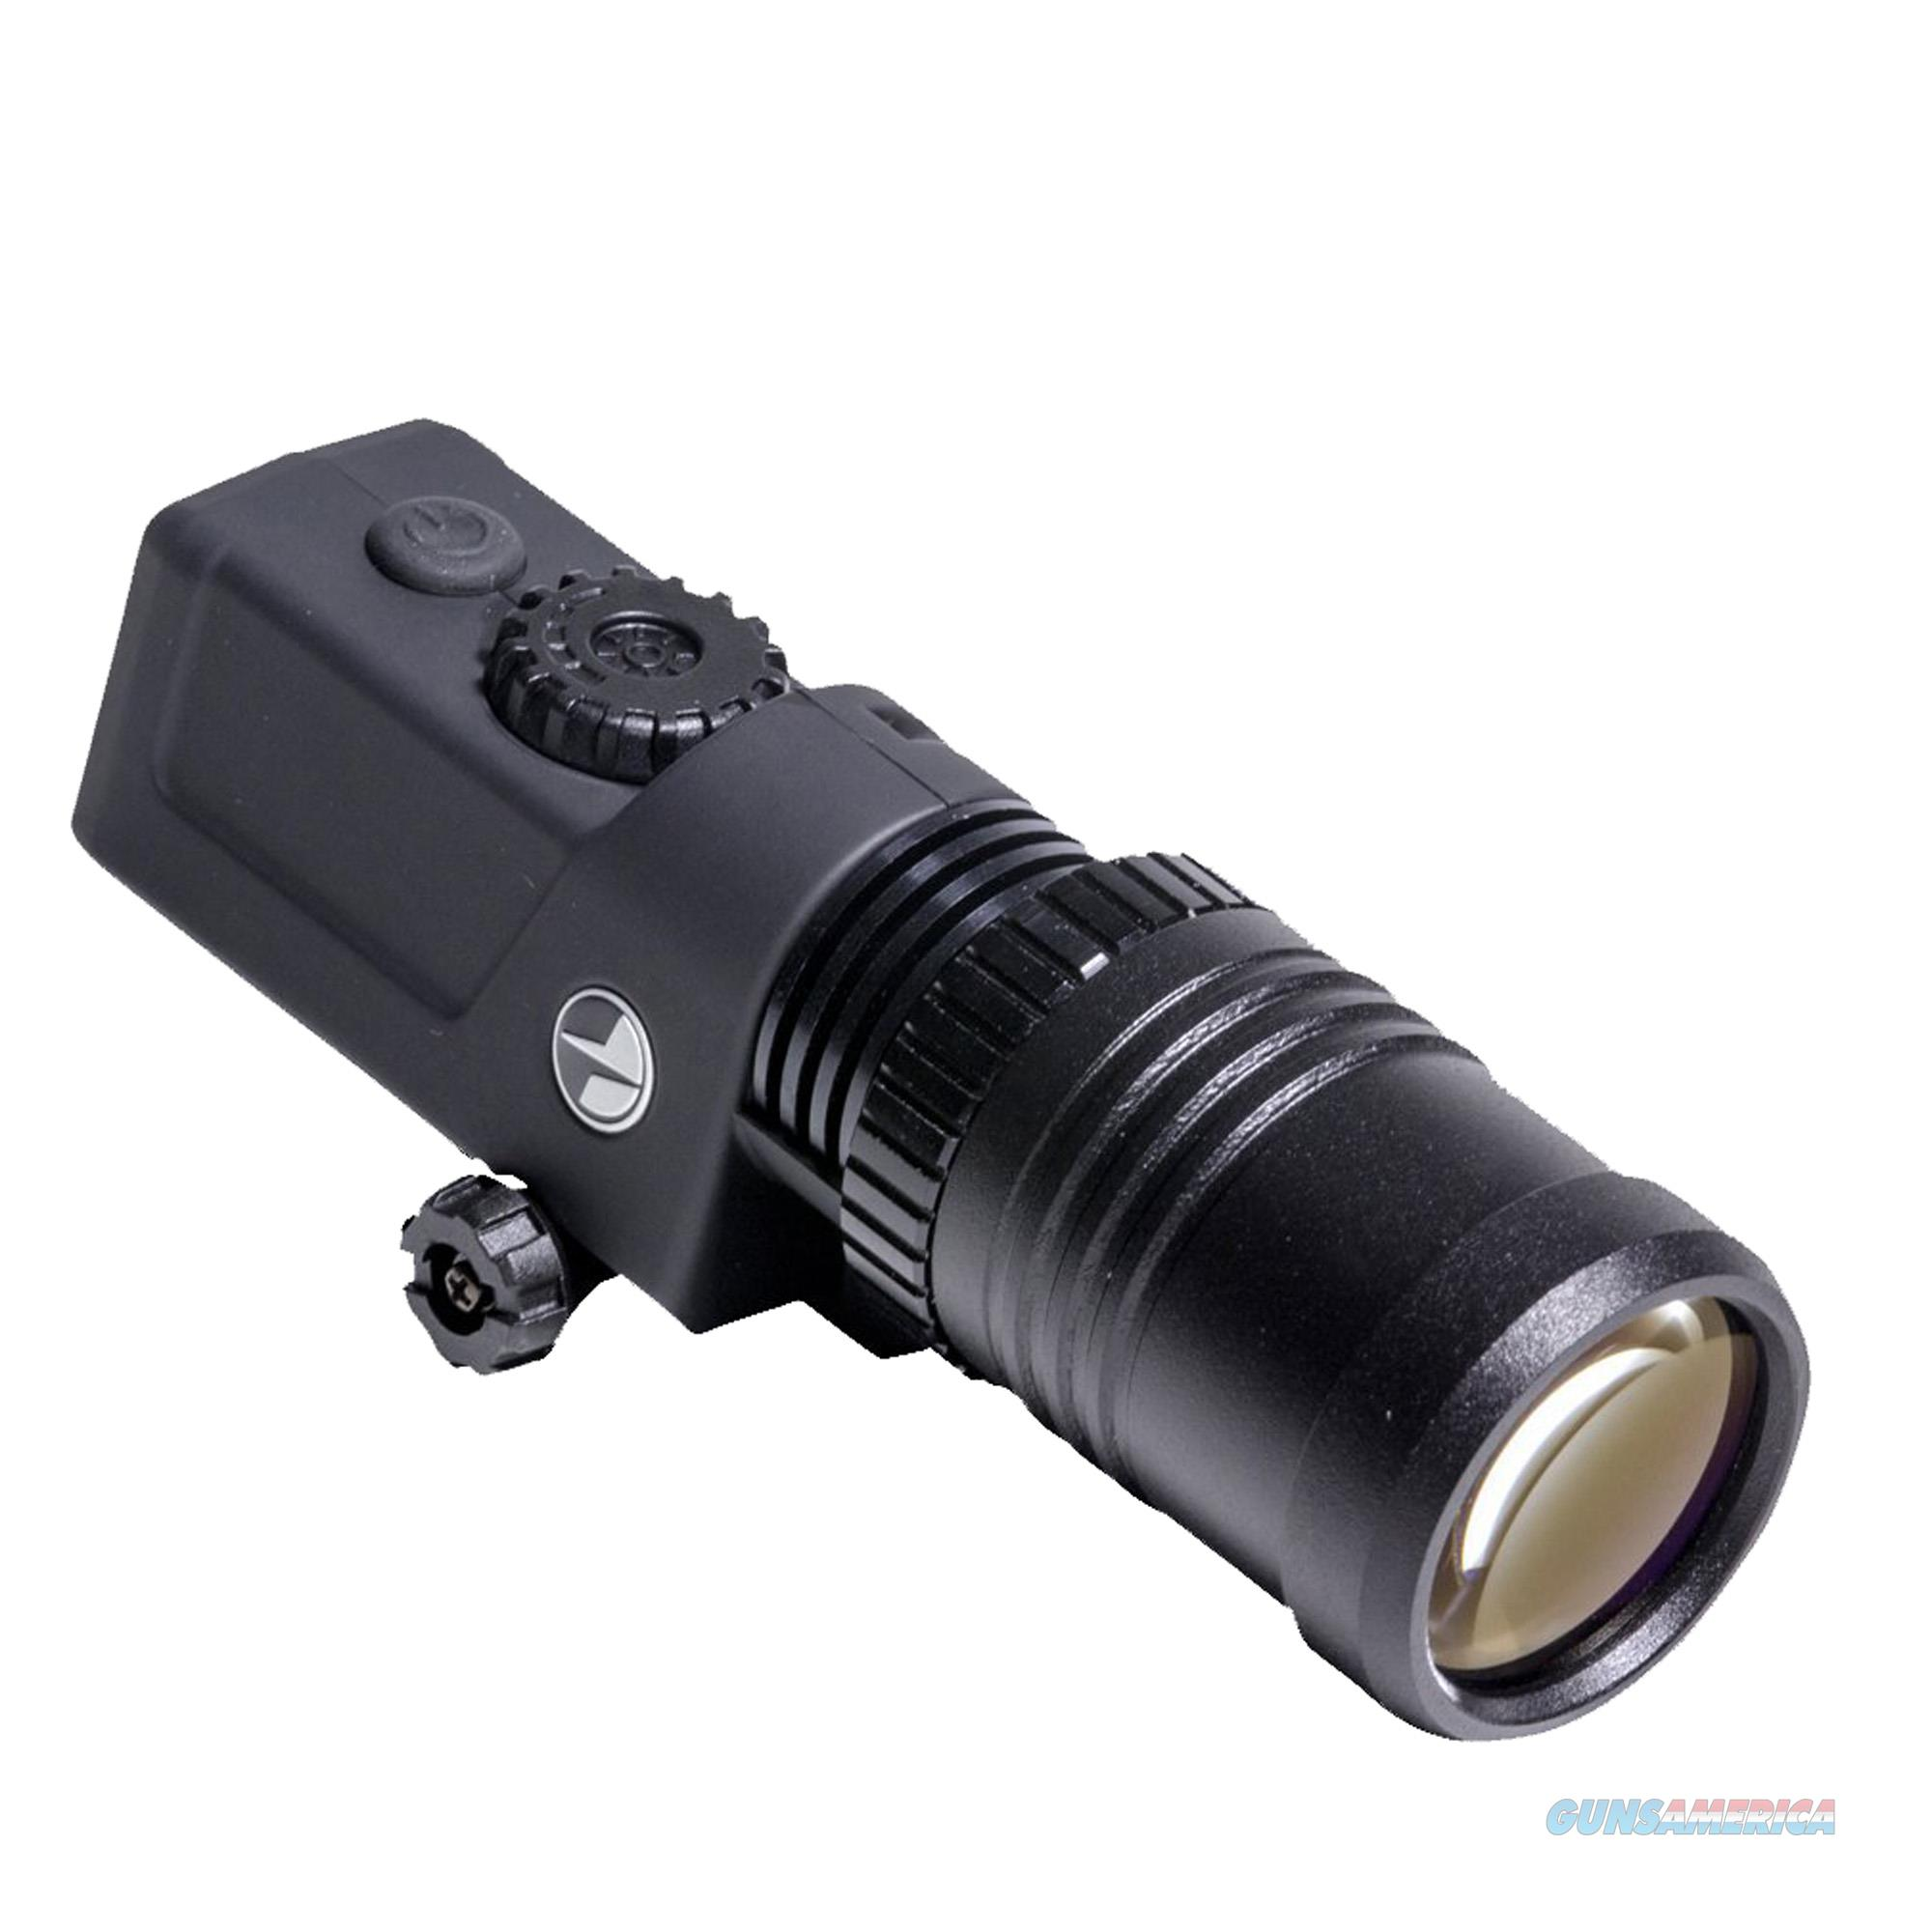 Pulsar X850 Ir Flashlight Night Vision Accessory PL79074  Non-Guns > Scopes/Mounts/Rings & Optics > Mounts > Other